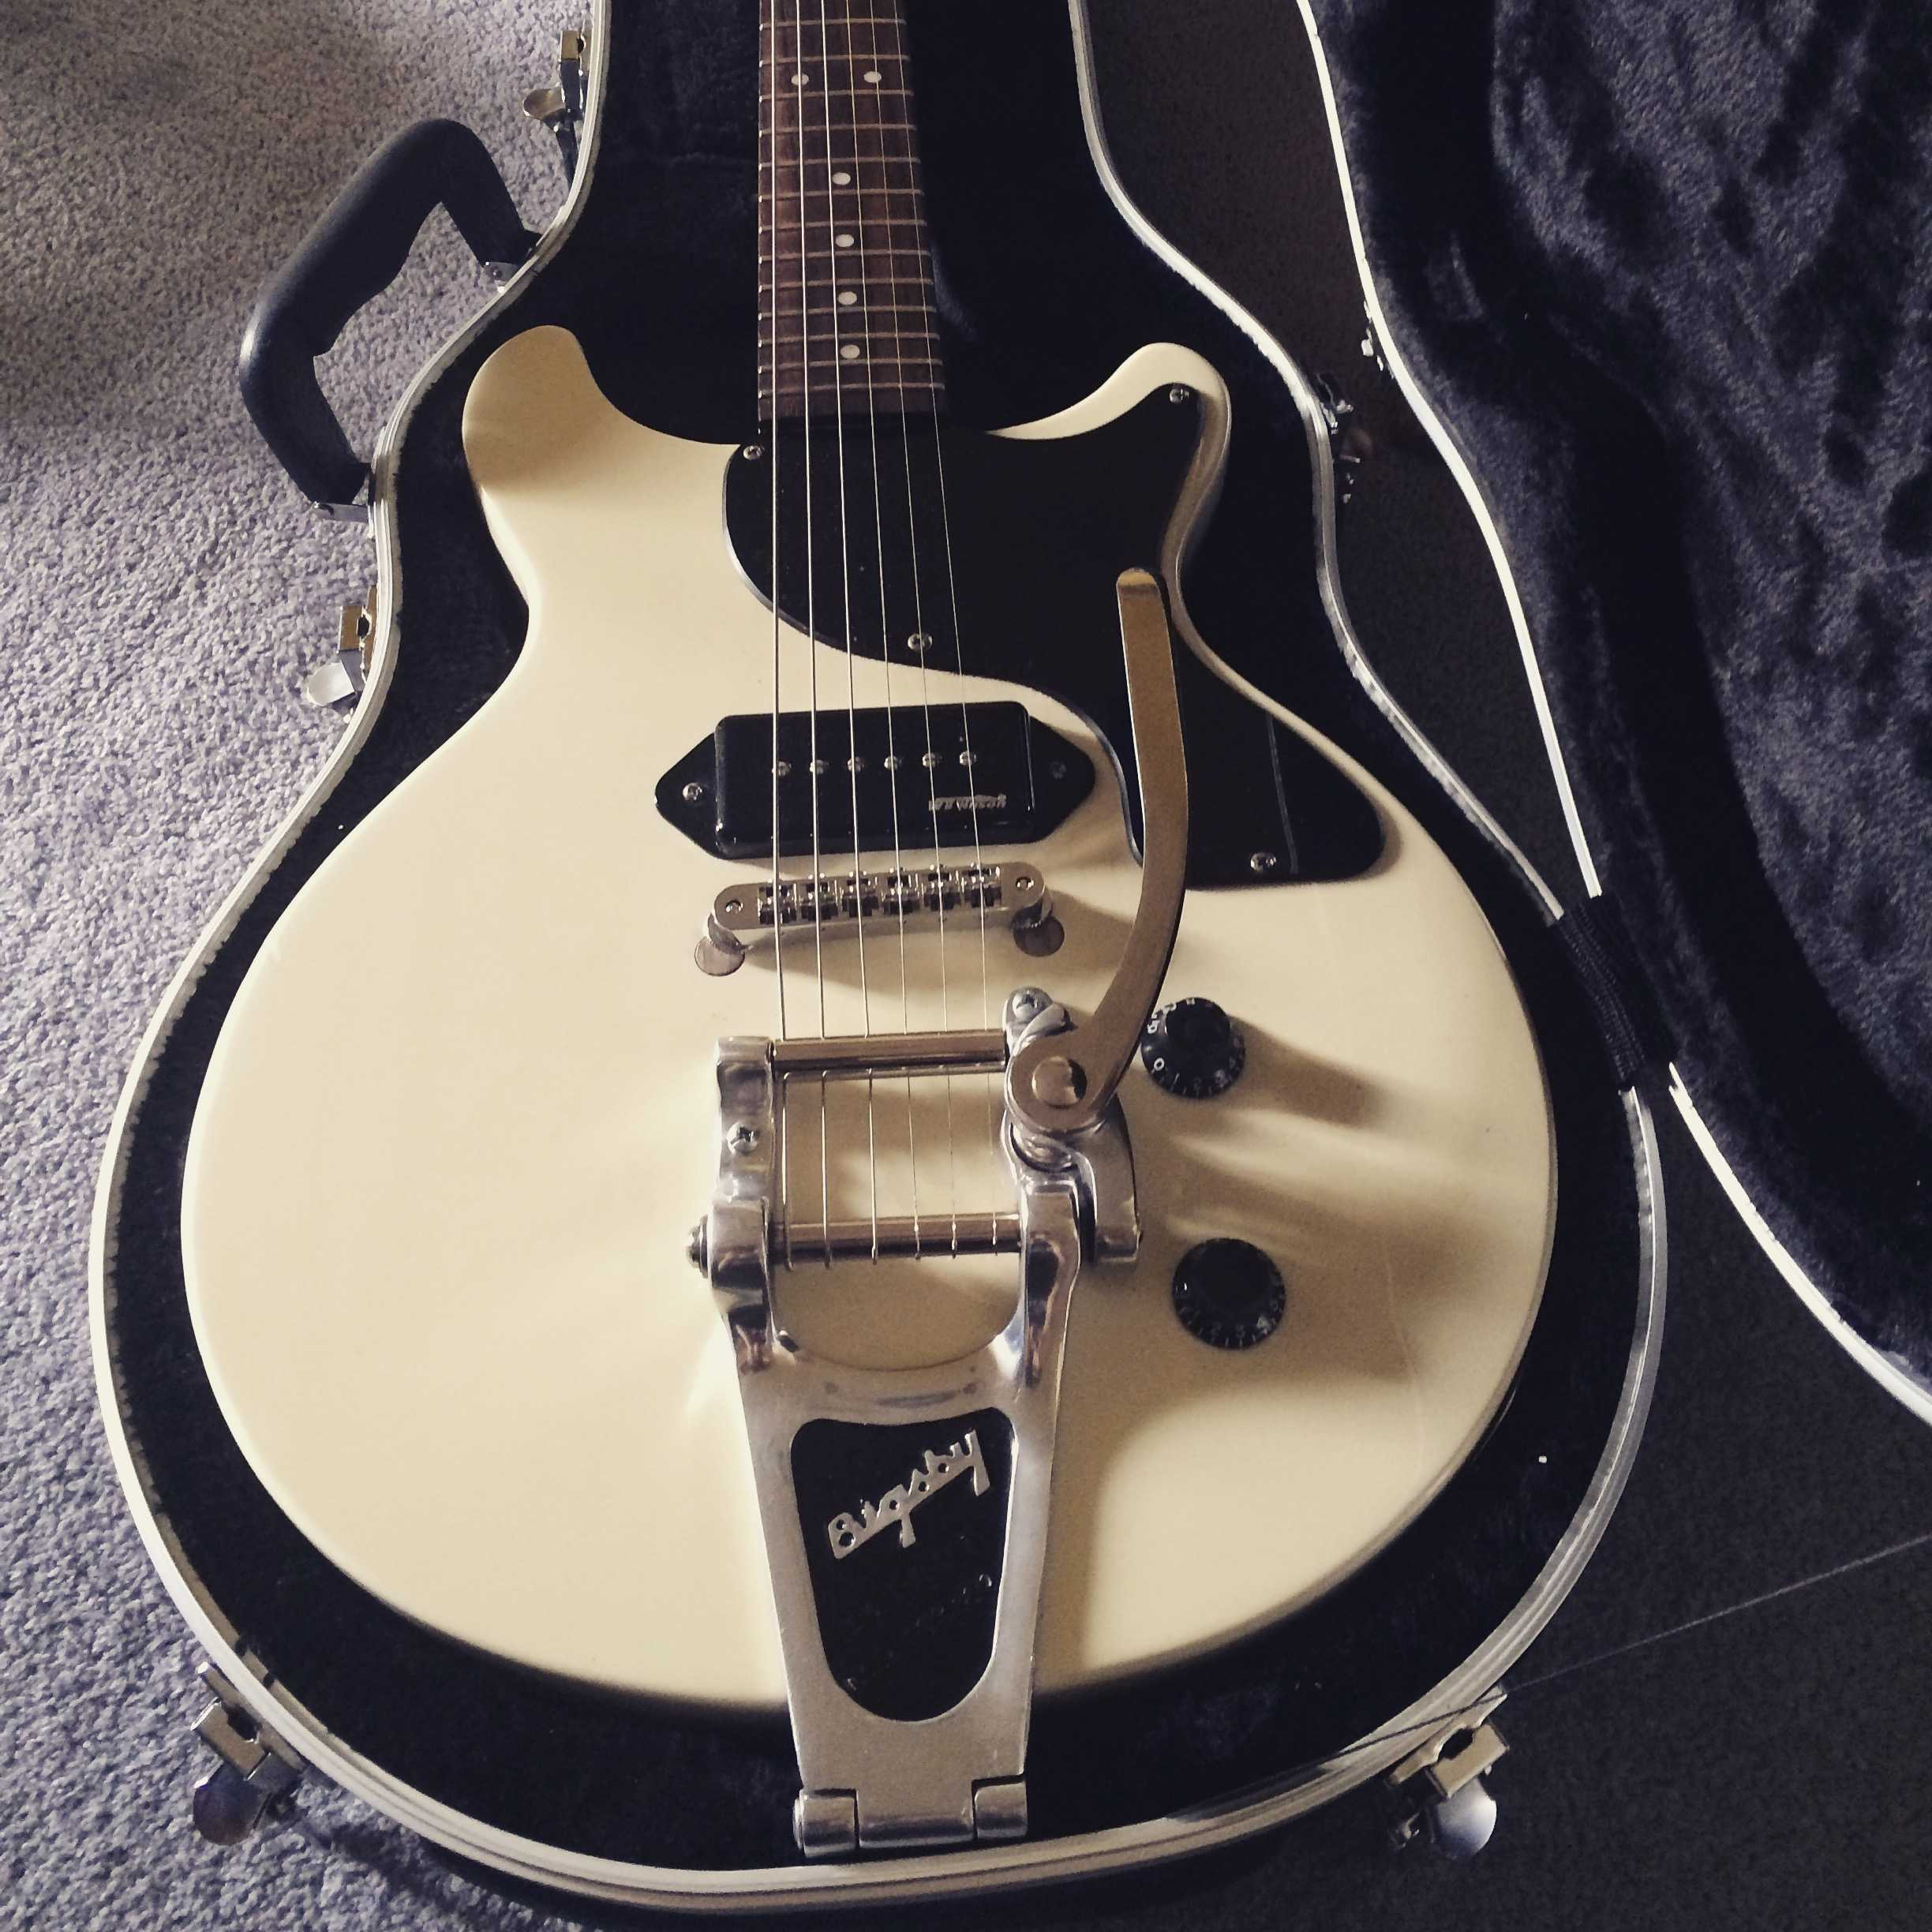 Les Paul Jr with TOWNER V.BLOCK and BIGSBY B7 Vibrato Tailpiece